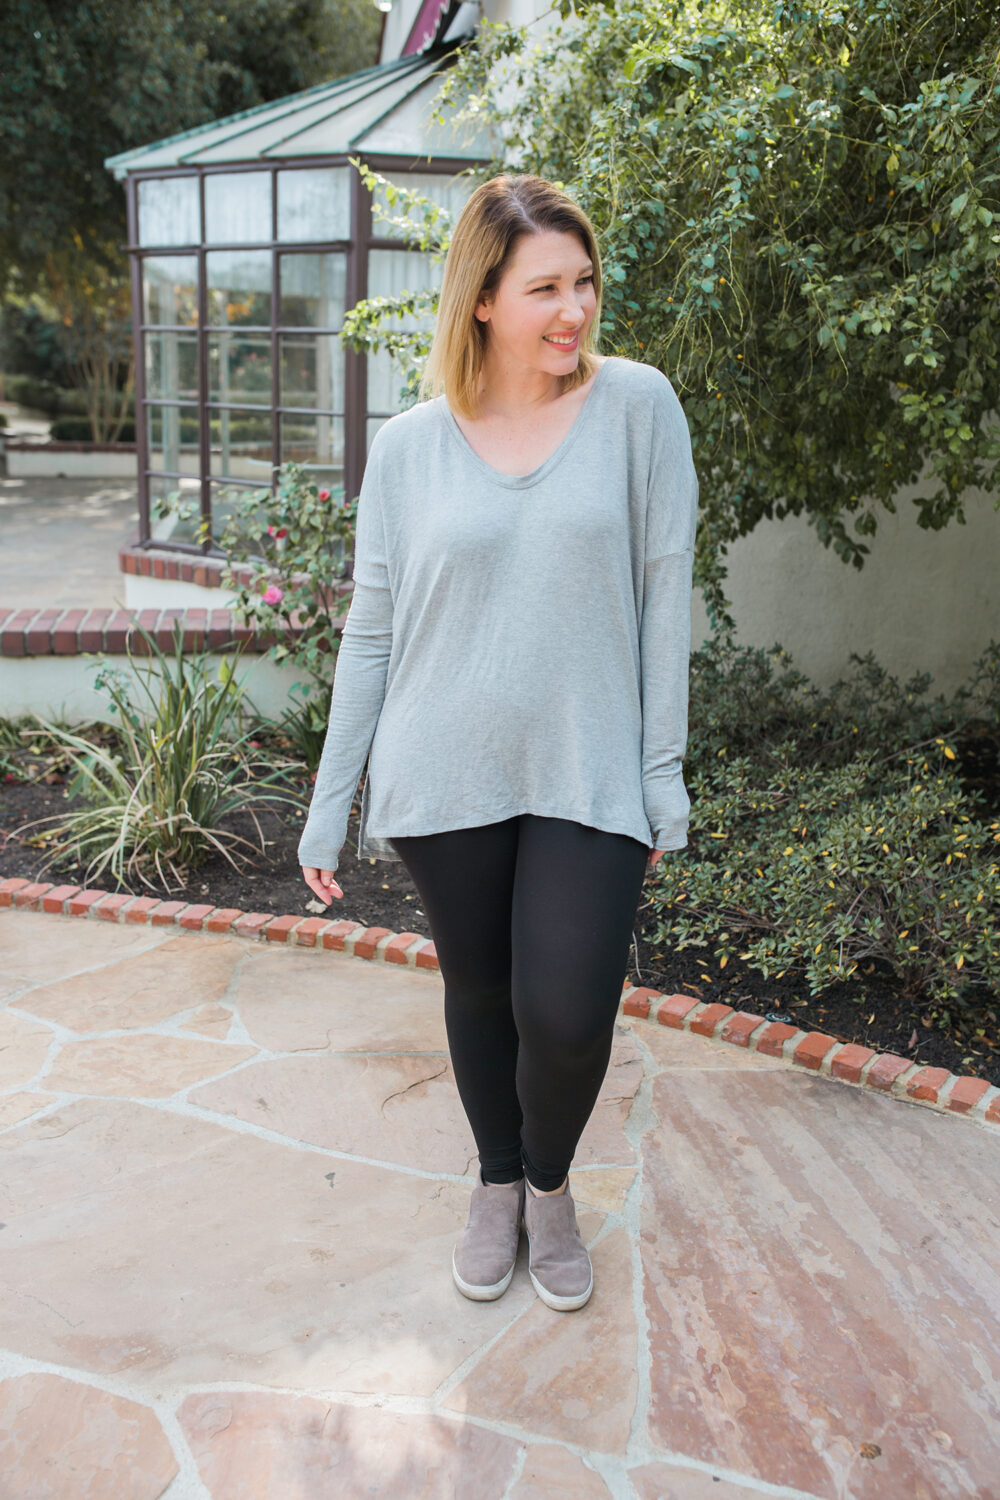 Looking for the best black leggings for a pear shaped body?!? These SPANX leggings are an amazing fit!